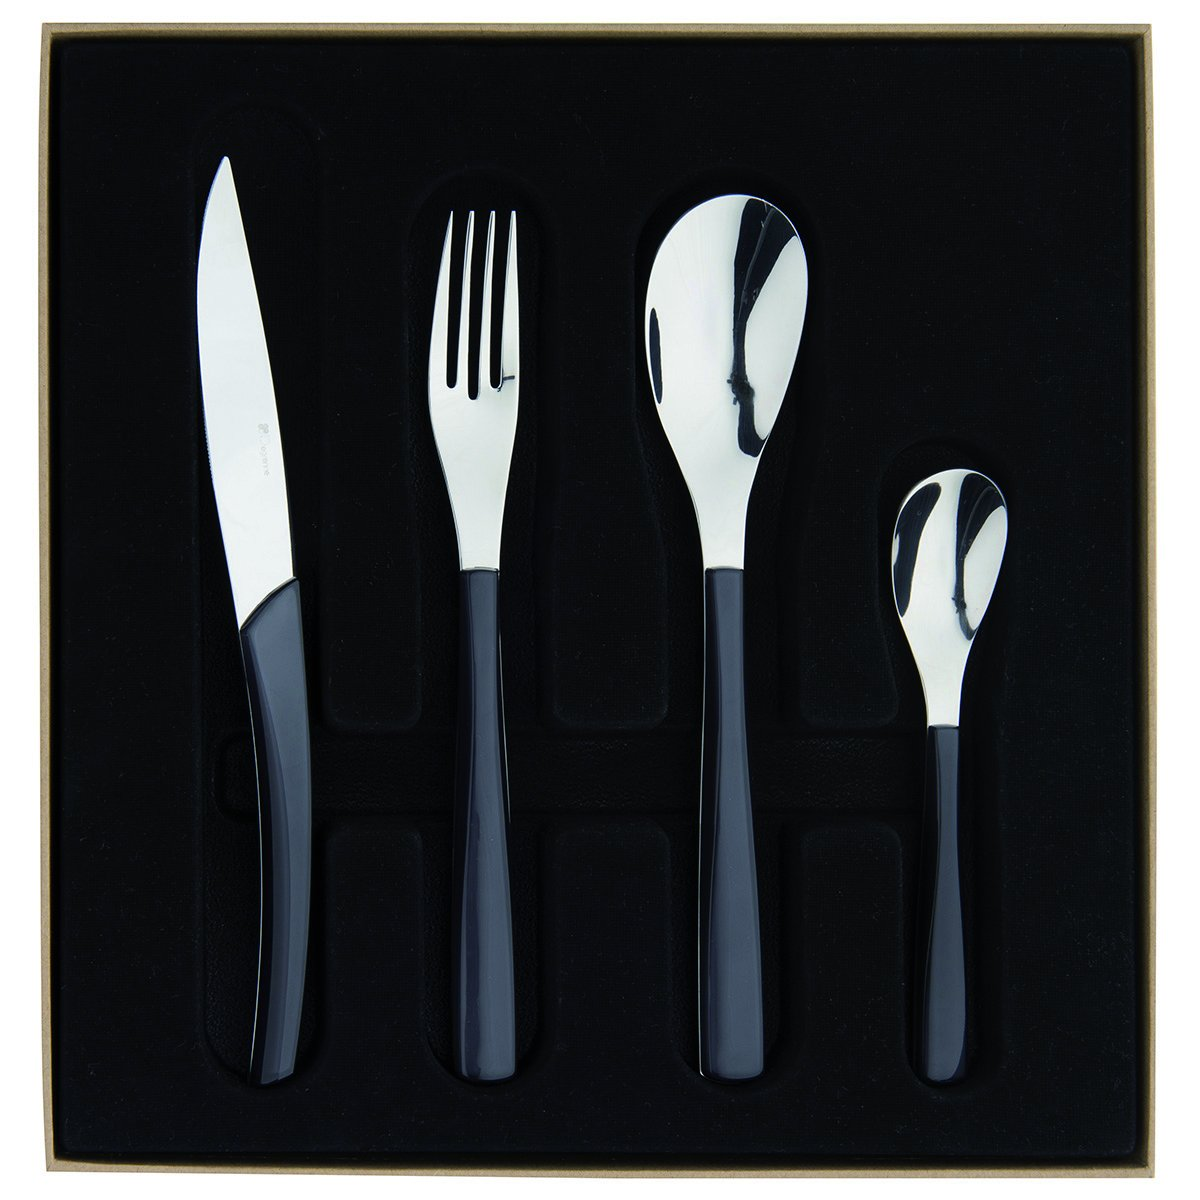 Degrenne 205887 Quartz Flatware Set, Grey